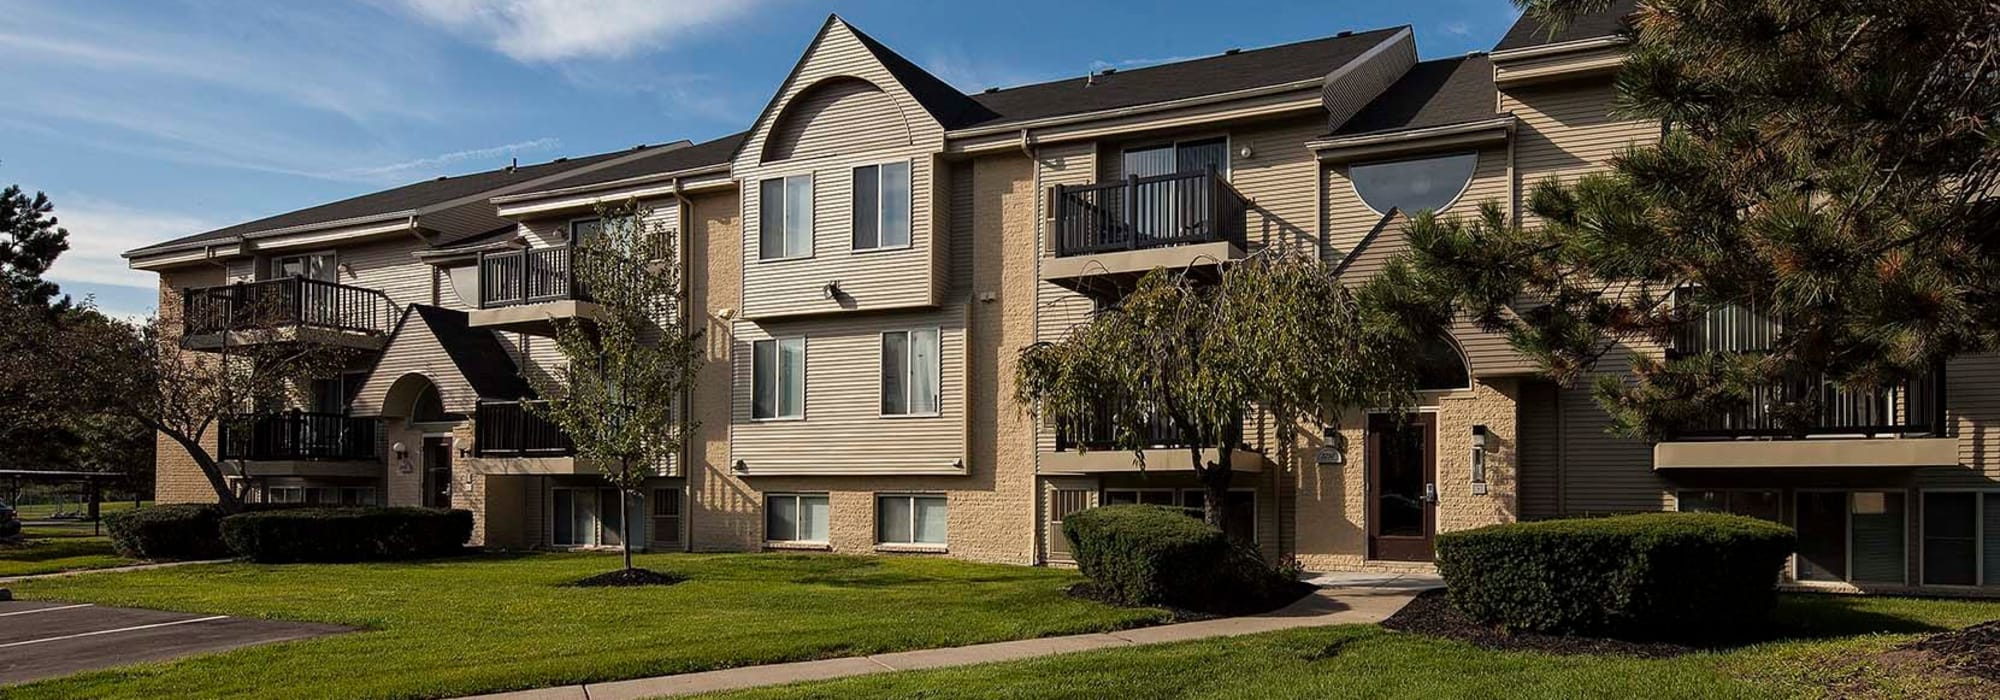 Apartments in Auburn Hills, MI